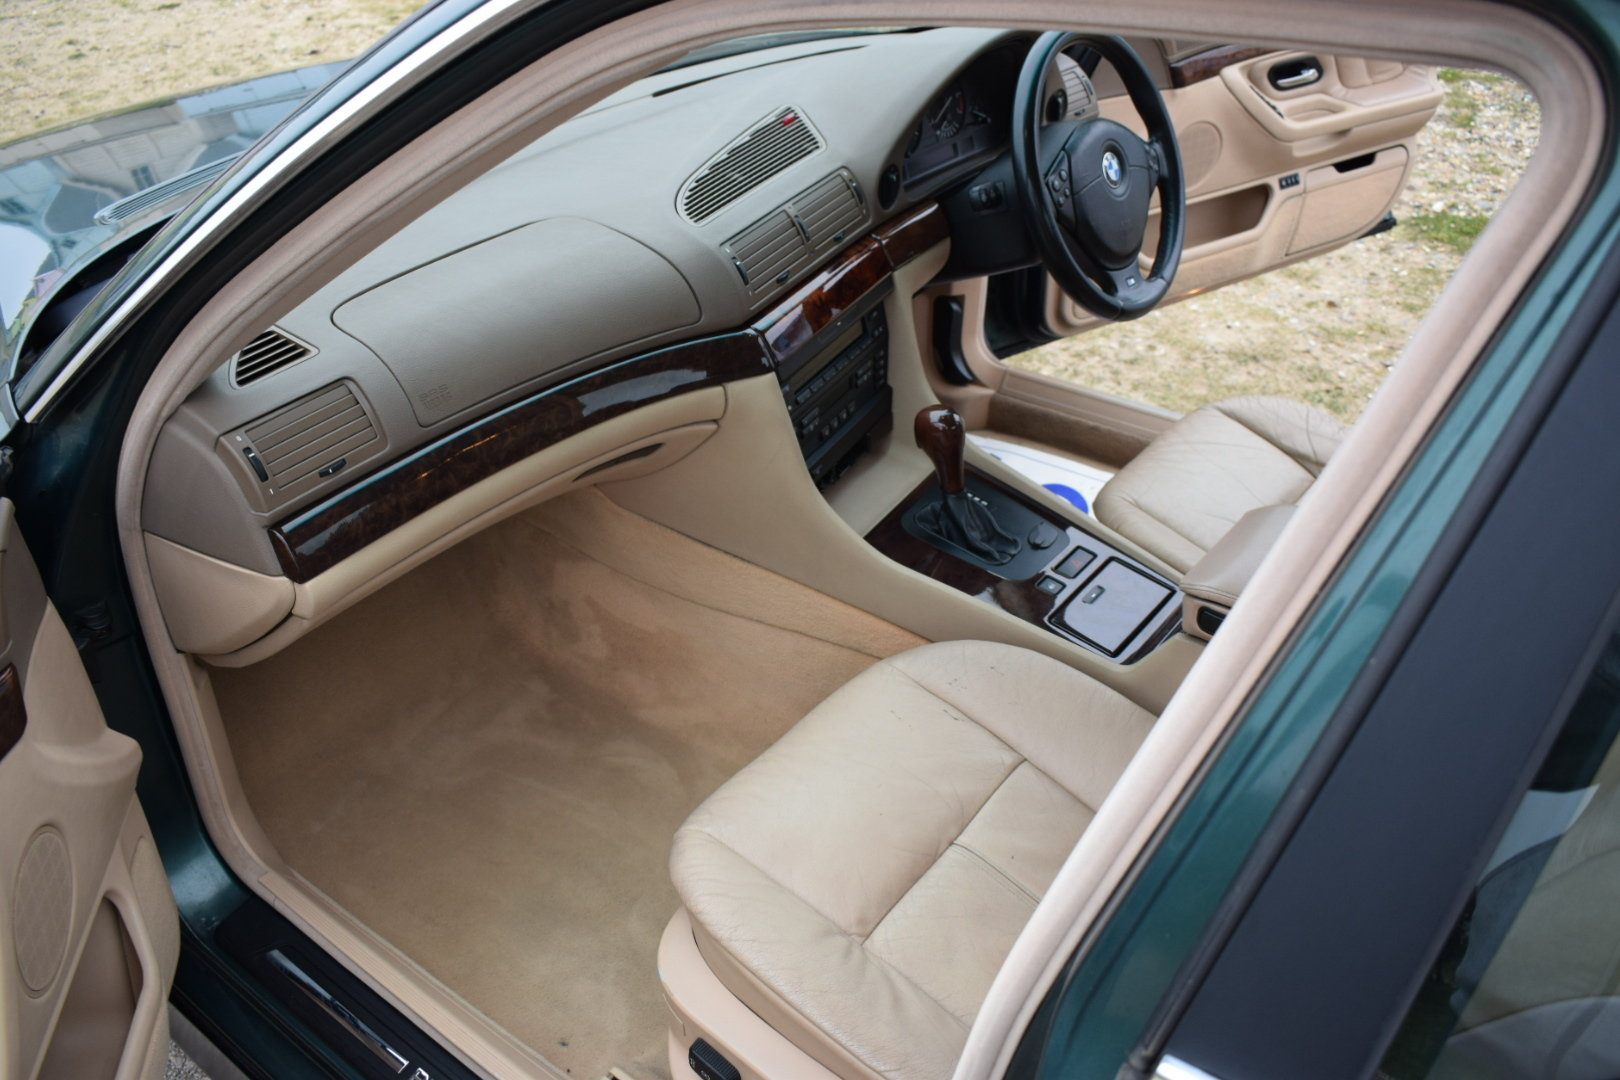 BMW E38 7 Series 1999 - VGC - MOT May 2020 For Sale (picture 6 of 6)